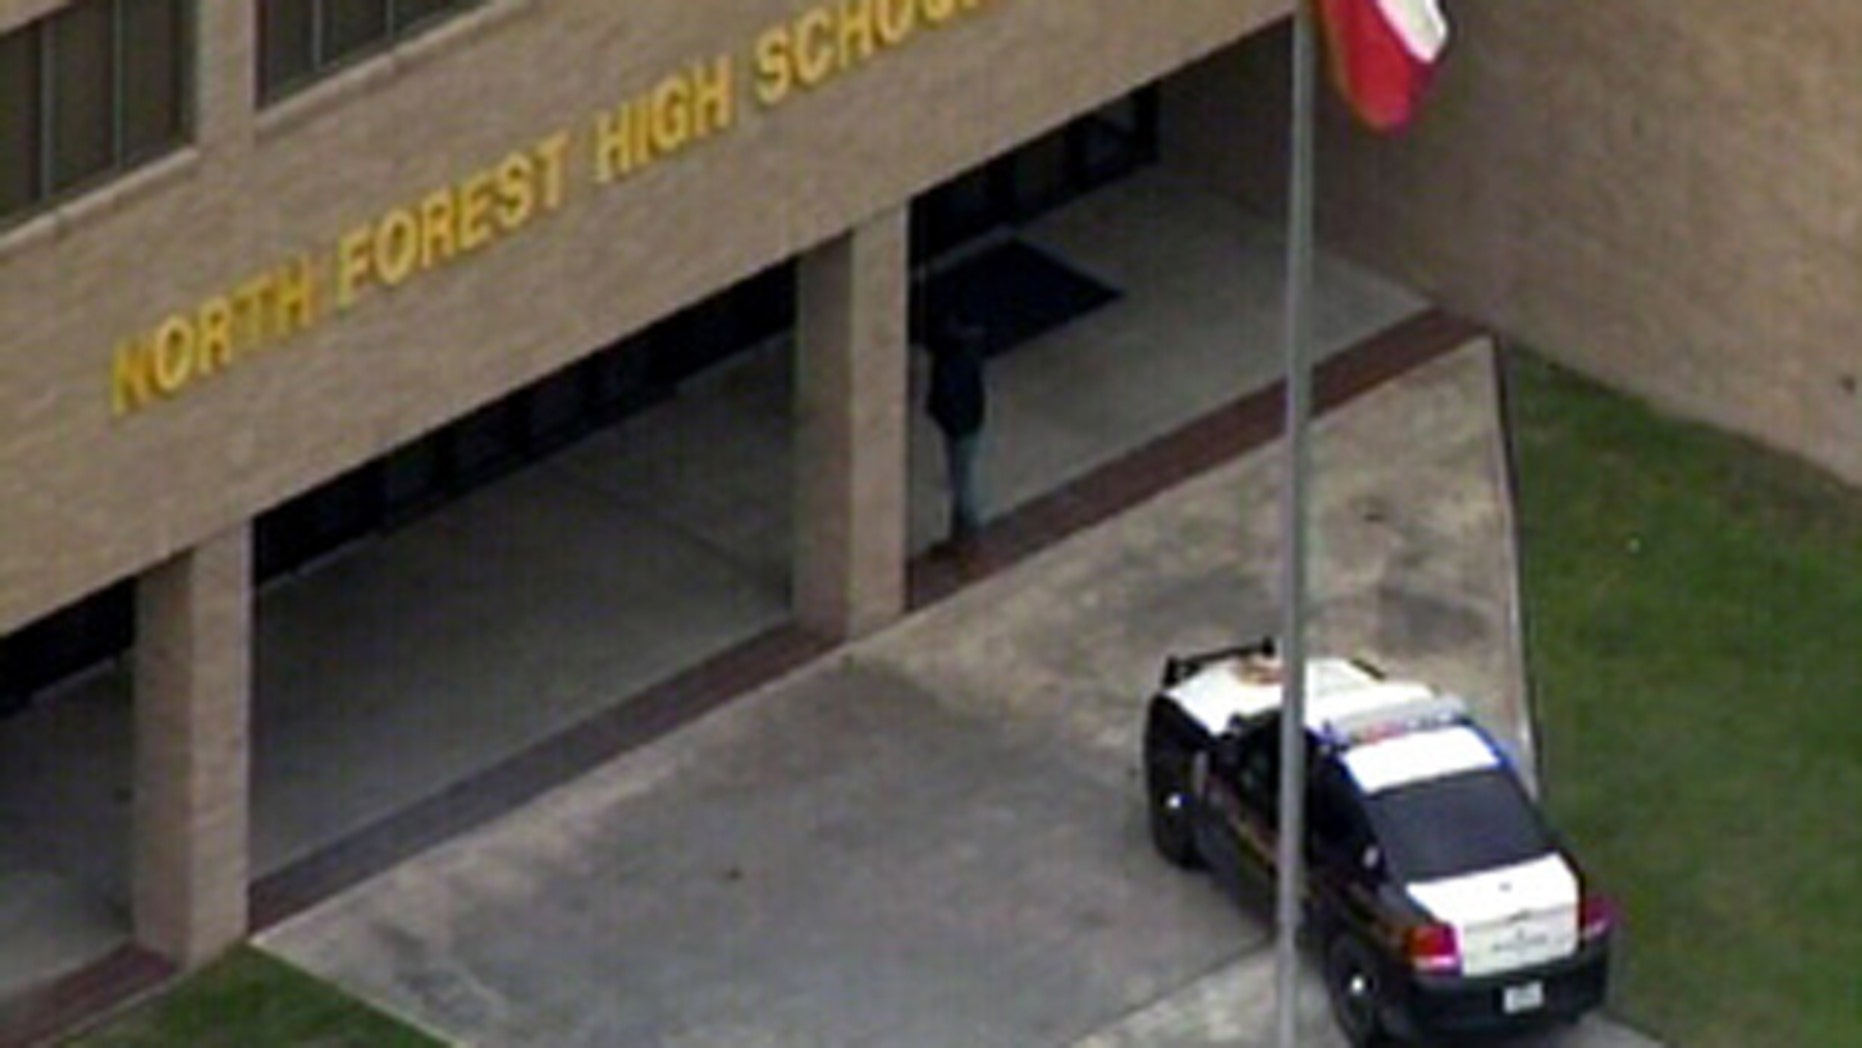 Jan. 10, 2012: This photo shows a police car outside of North Forest High School where a student reportedly shot another student in the leg.